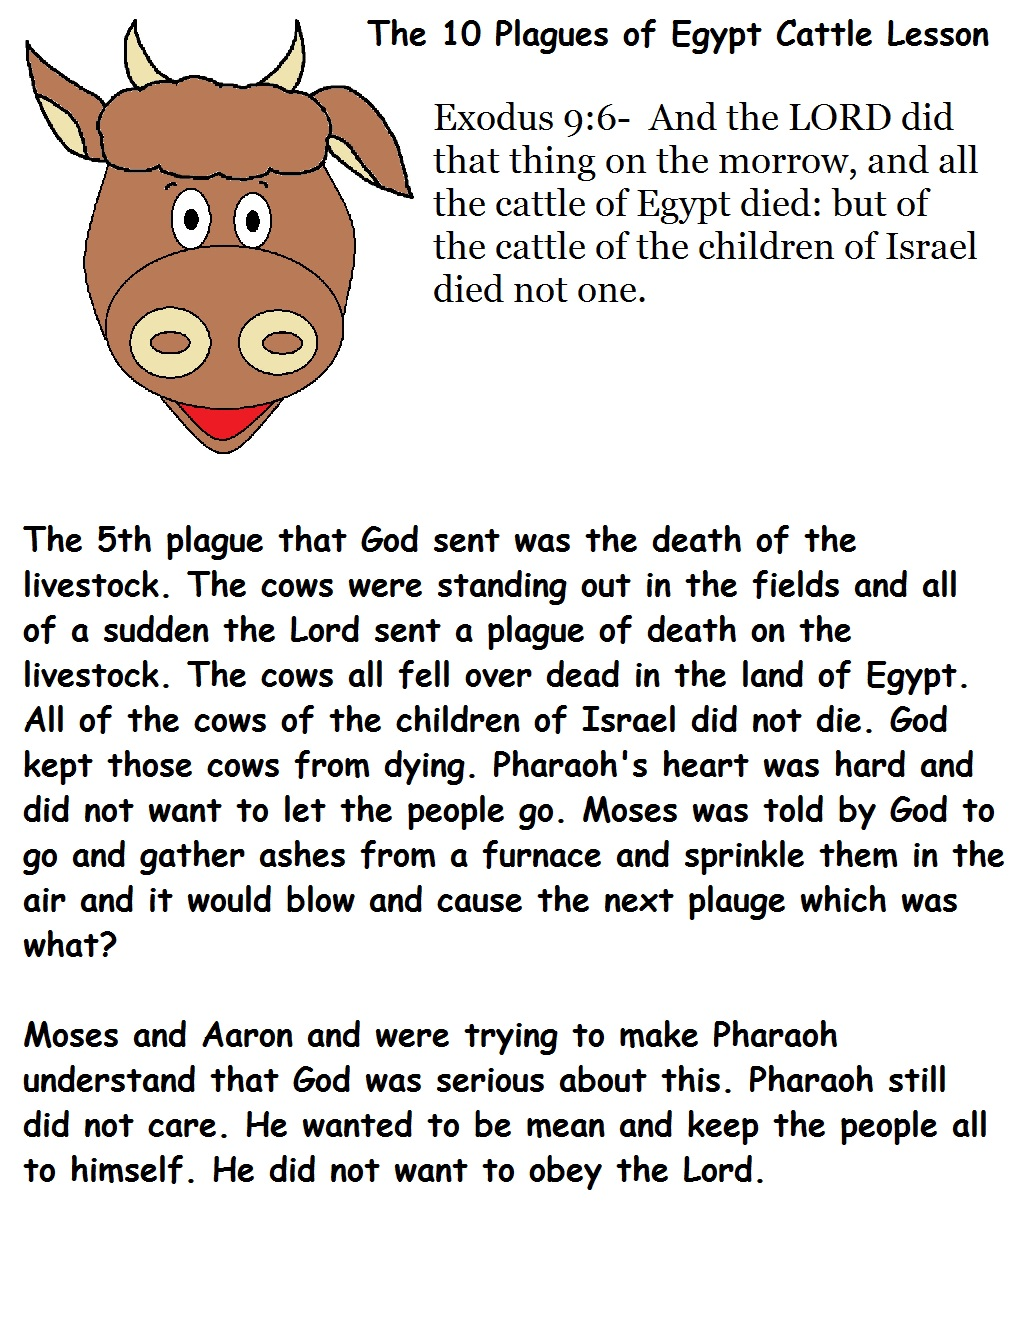 the 10 plagues of egypt livestock lesson